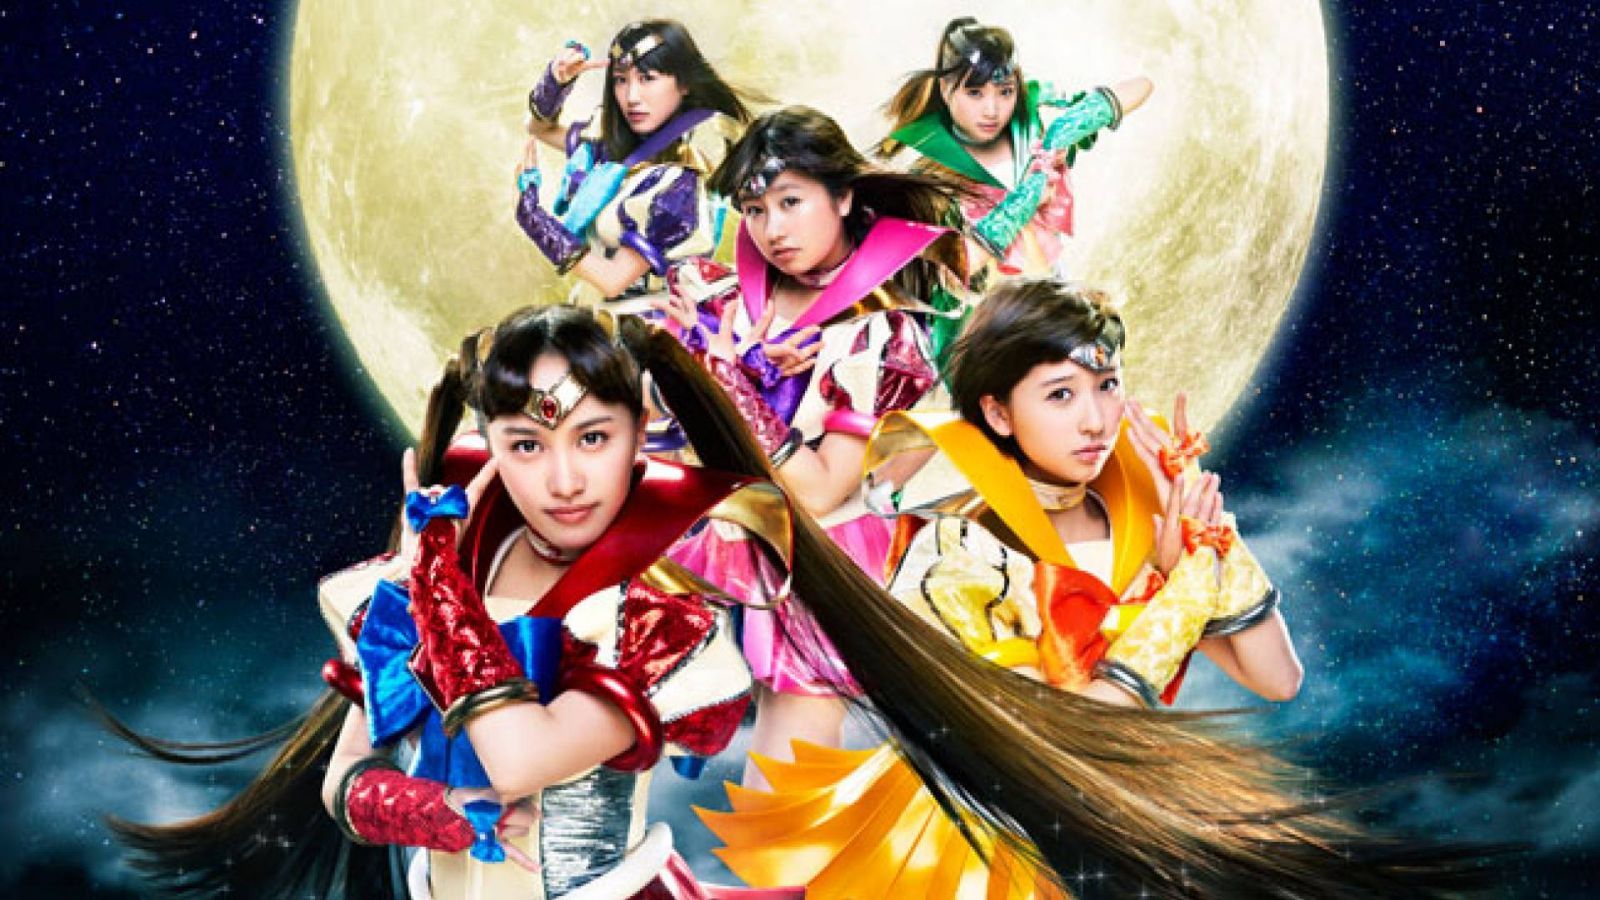 Momoiro Clover Z © EVIL LINE RECORDS. All rights reserved.